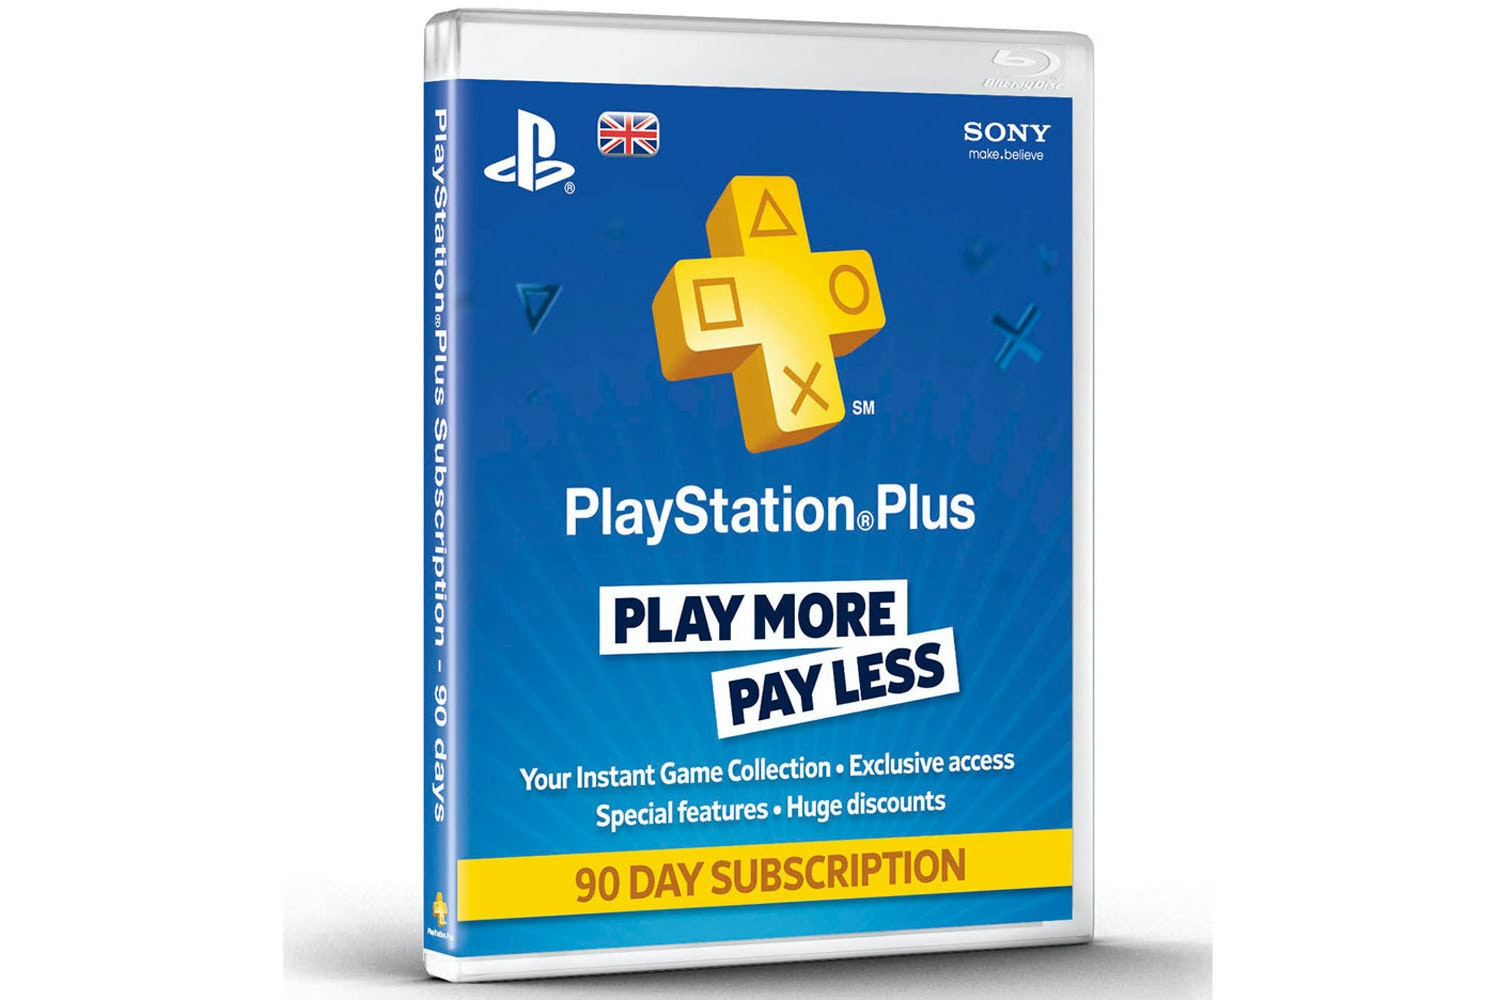 Playstation Plus | 90 Day Subscription